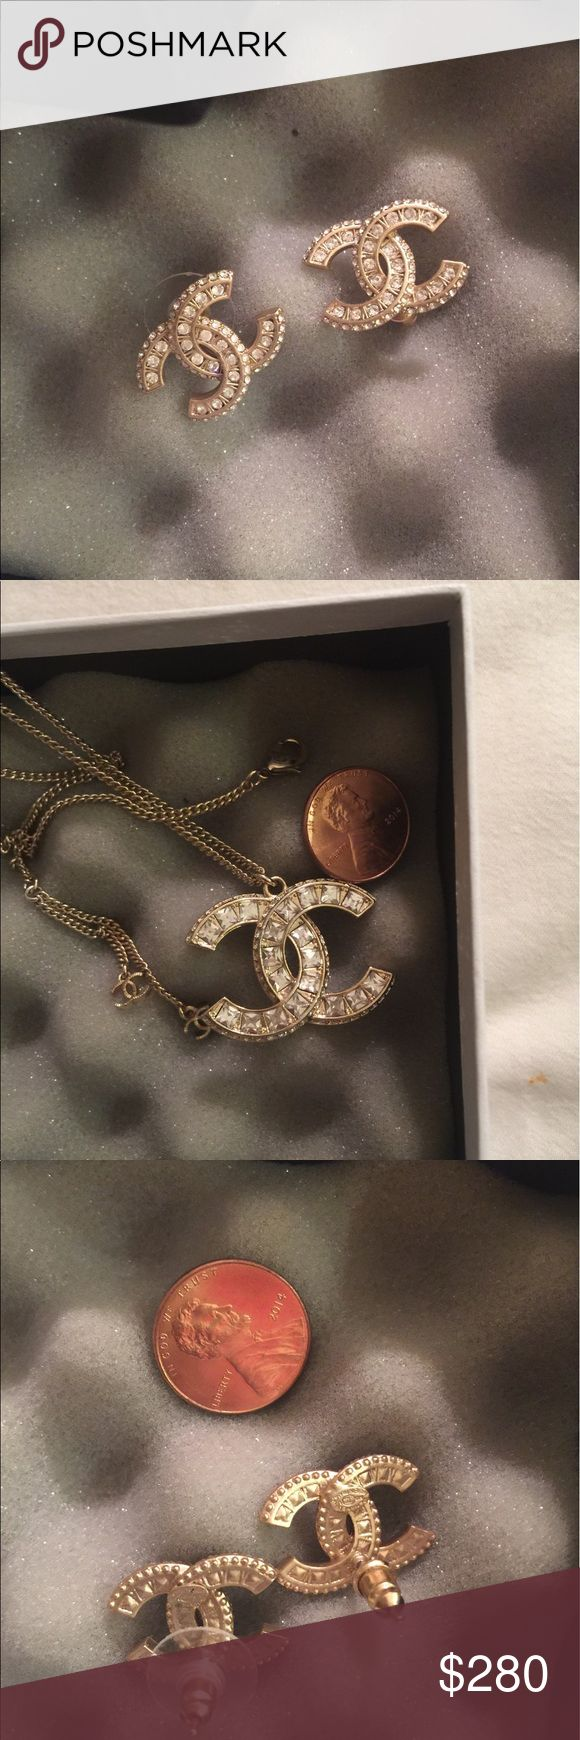 Chanel Necklace and earring bundle Gold toned. Beautiful set that can bring glamour to any outfit. Its the highest quality that is available. Please se the price before asking the obvious. Comes in a box. CHANEL Jewelry Necklaces